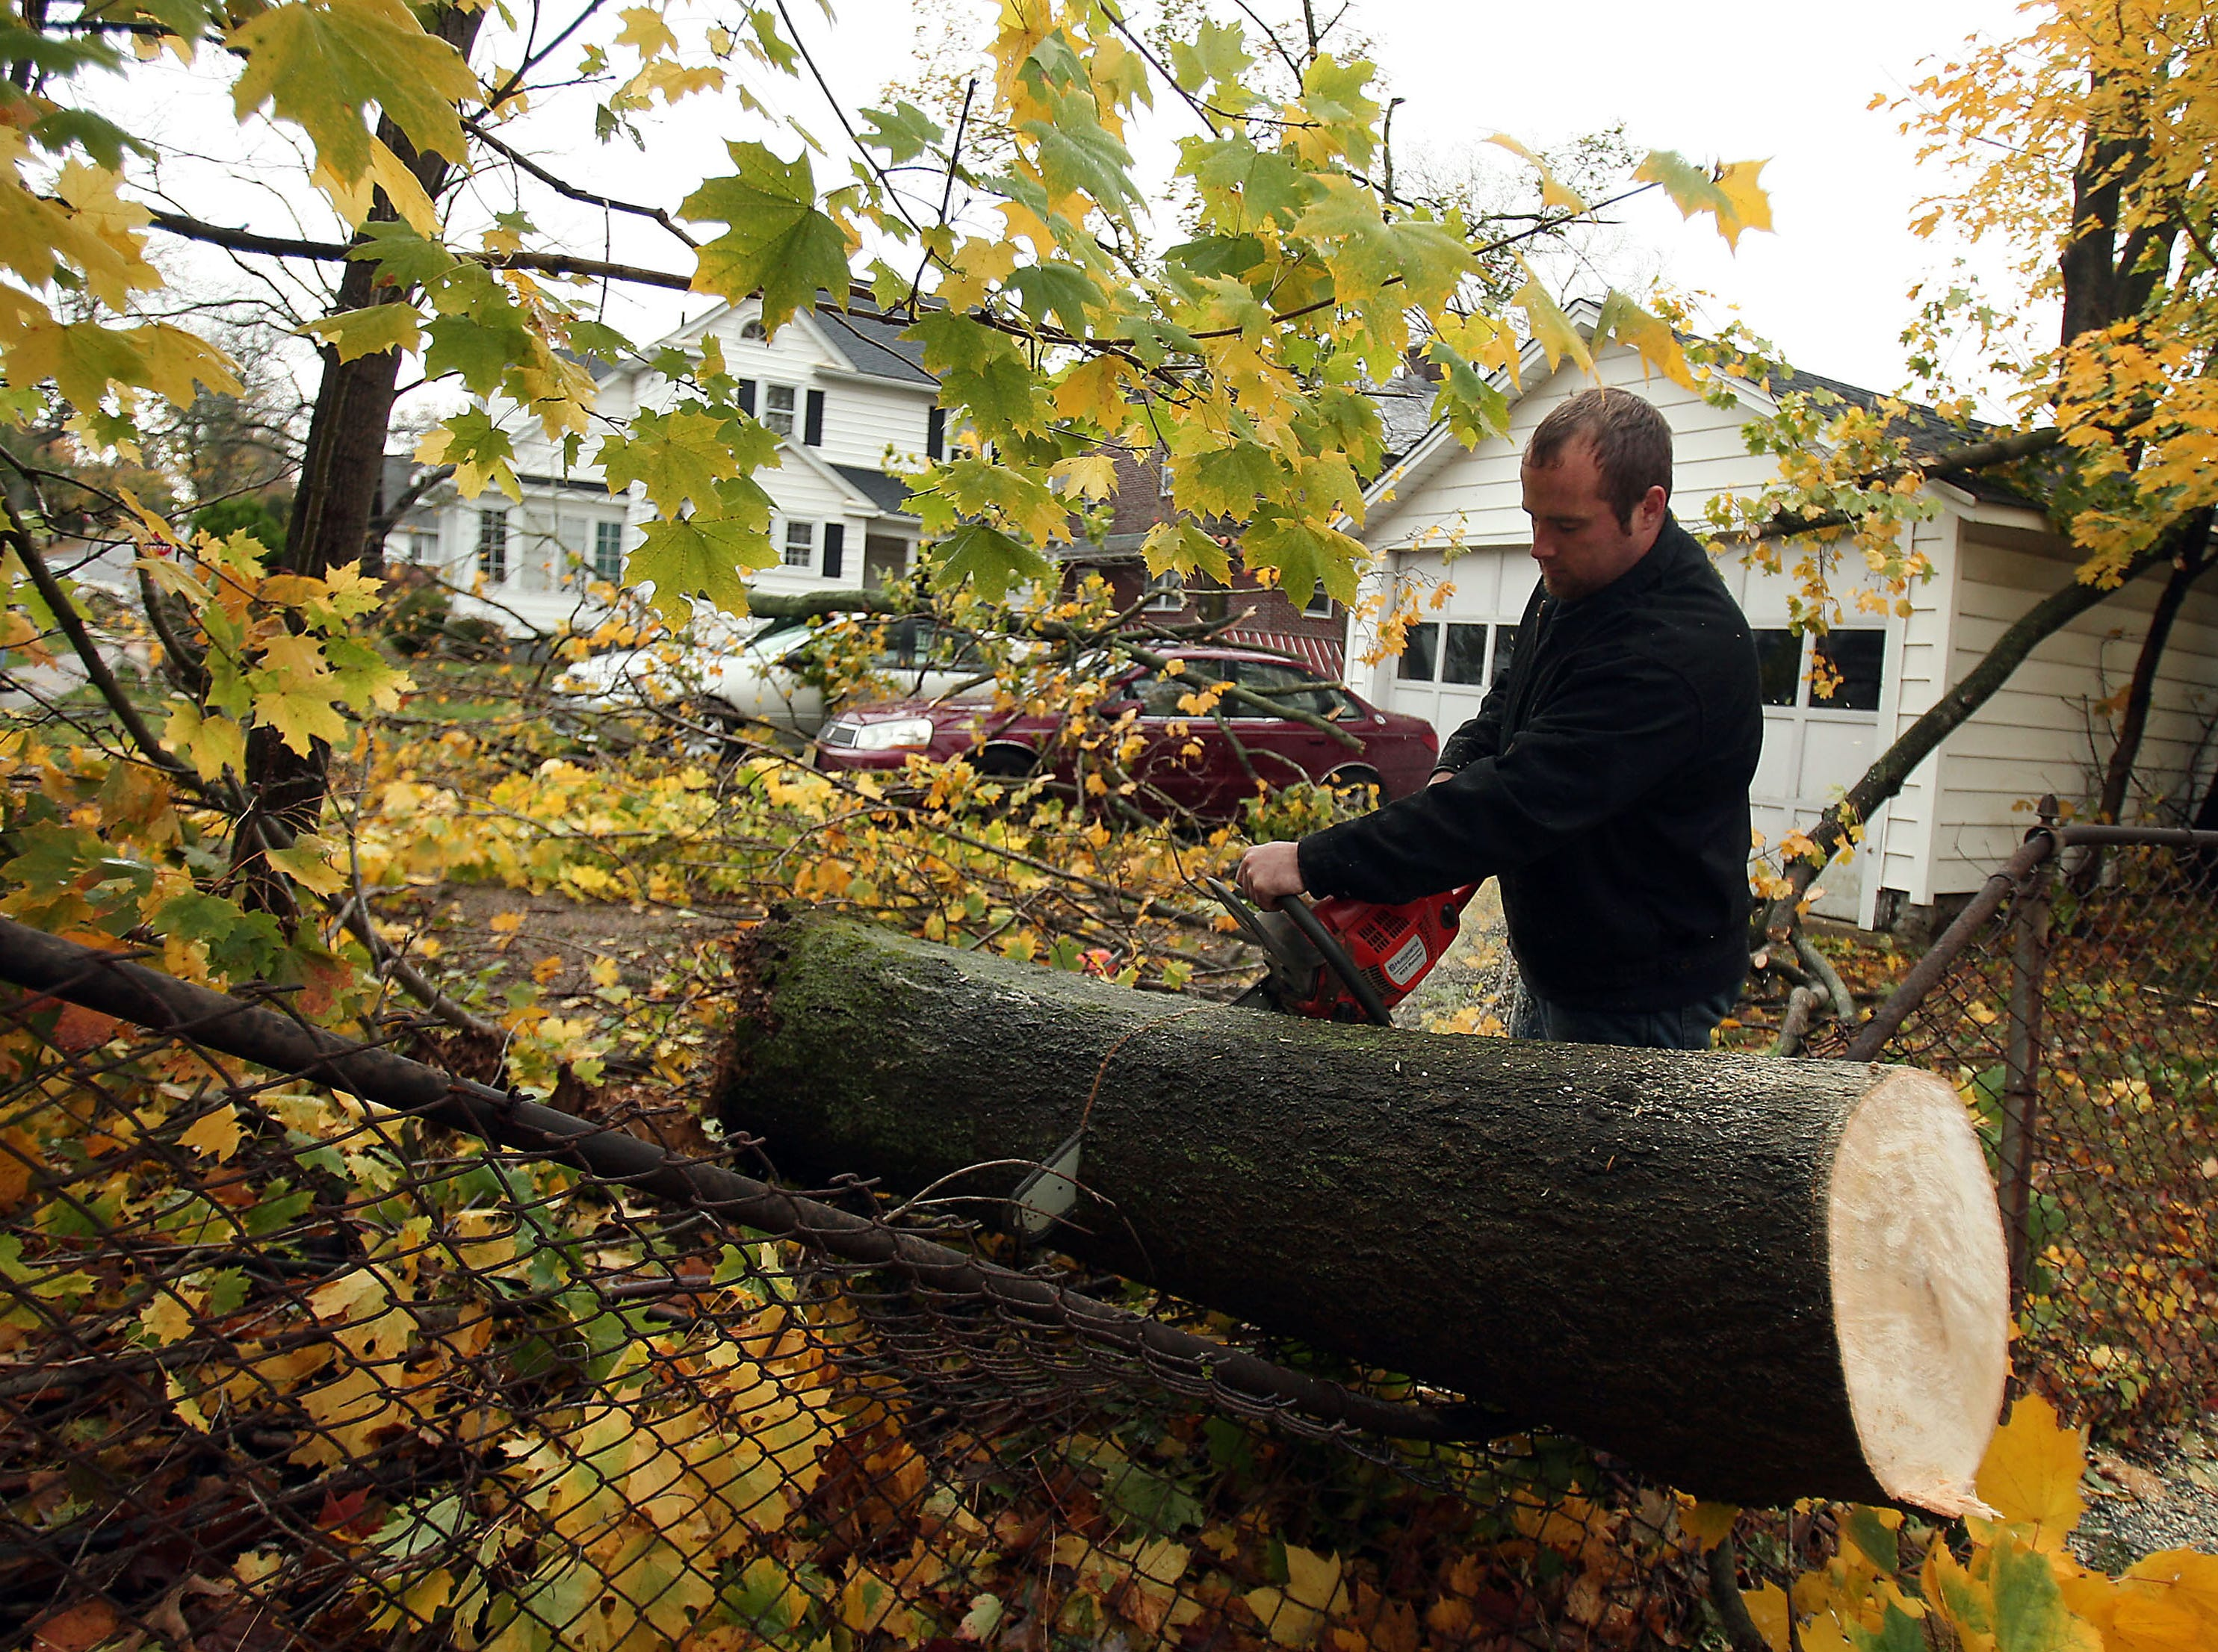 Morristown, NJ-- October 30, 2012--Steve Penzenik of Roxbury uses a chain saw to cut up a fallen tree on Mills Street in Morristown, NJ after Hurricane Sandy left homes damages and without power throughout New Jersey. 